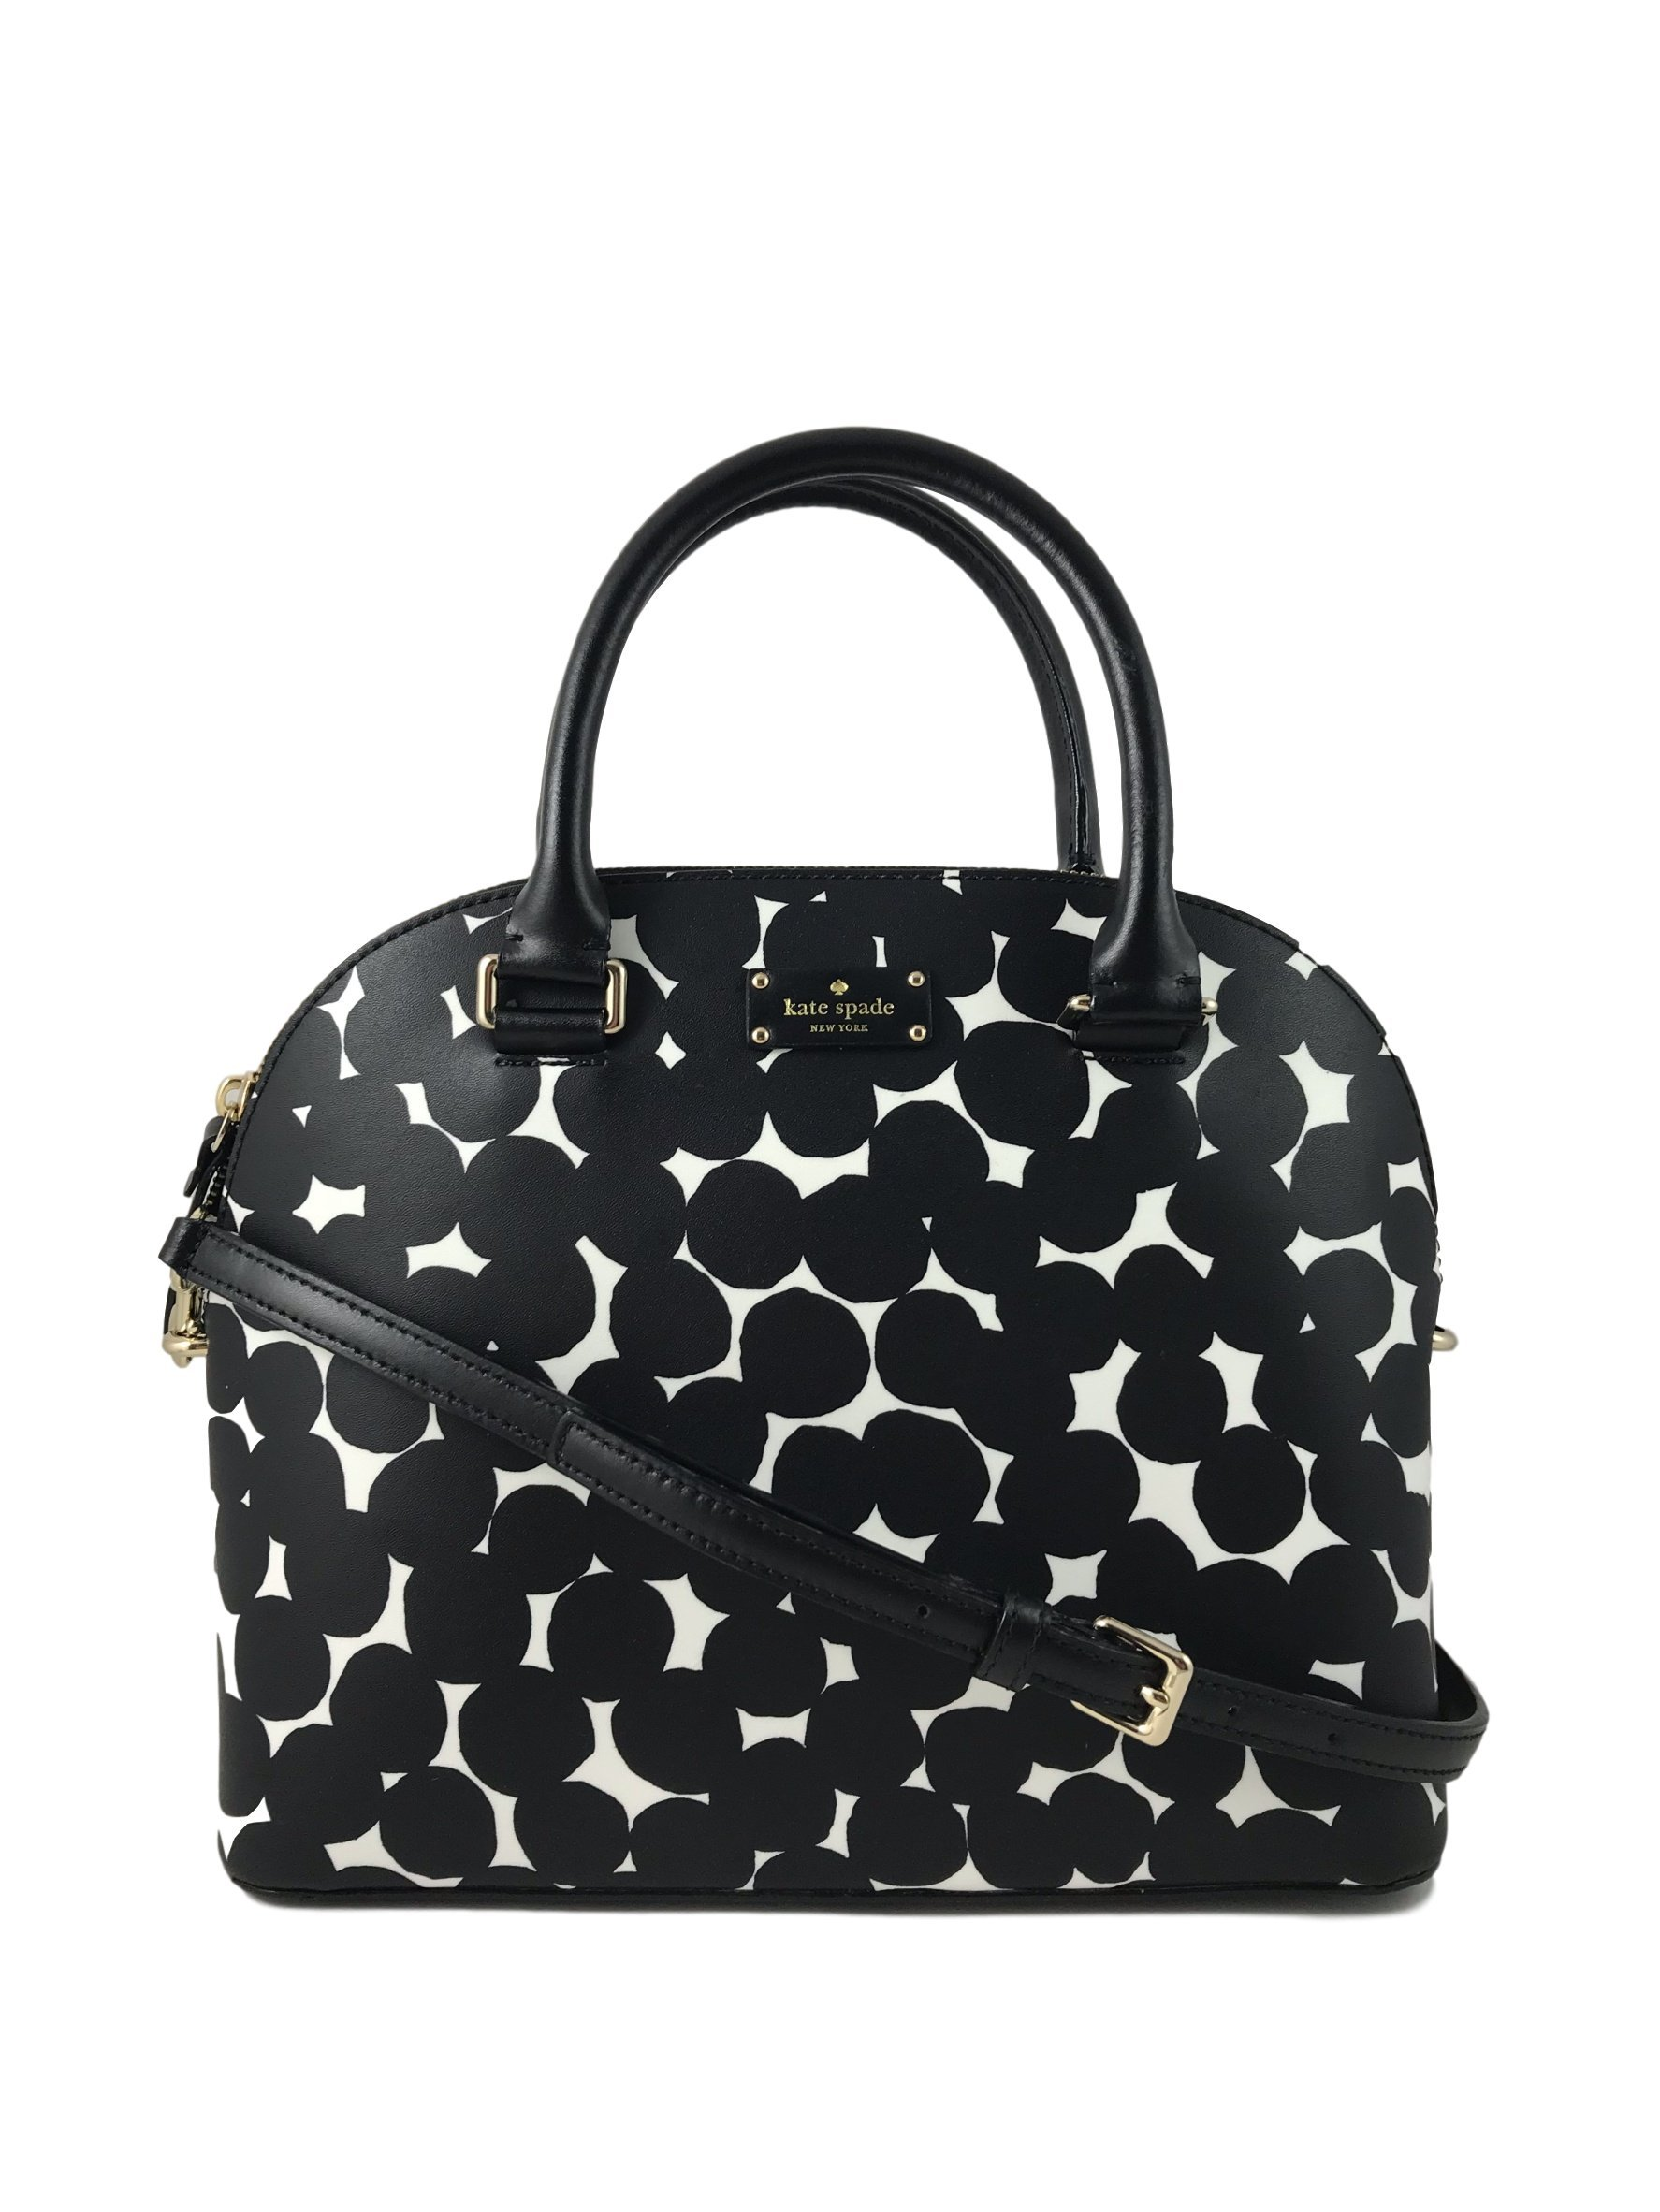 Kate Spade New York Carli Grove Street Splodge Dot Leather Handbag in Black/Cream by Kate Spade New York